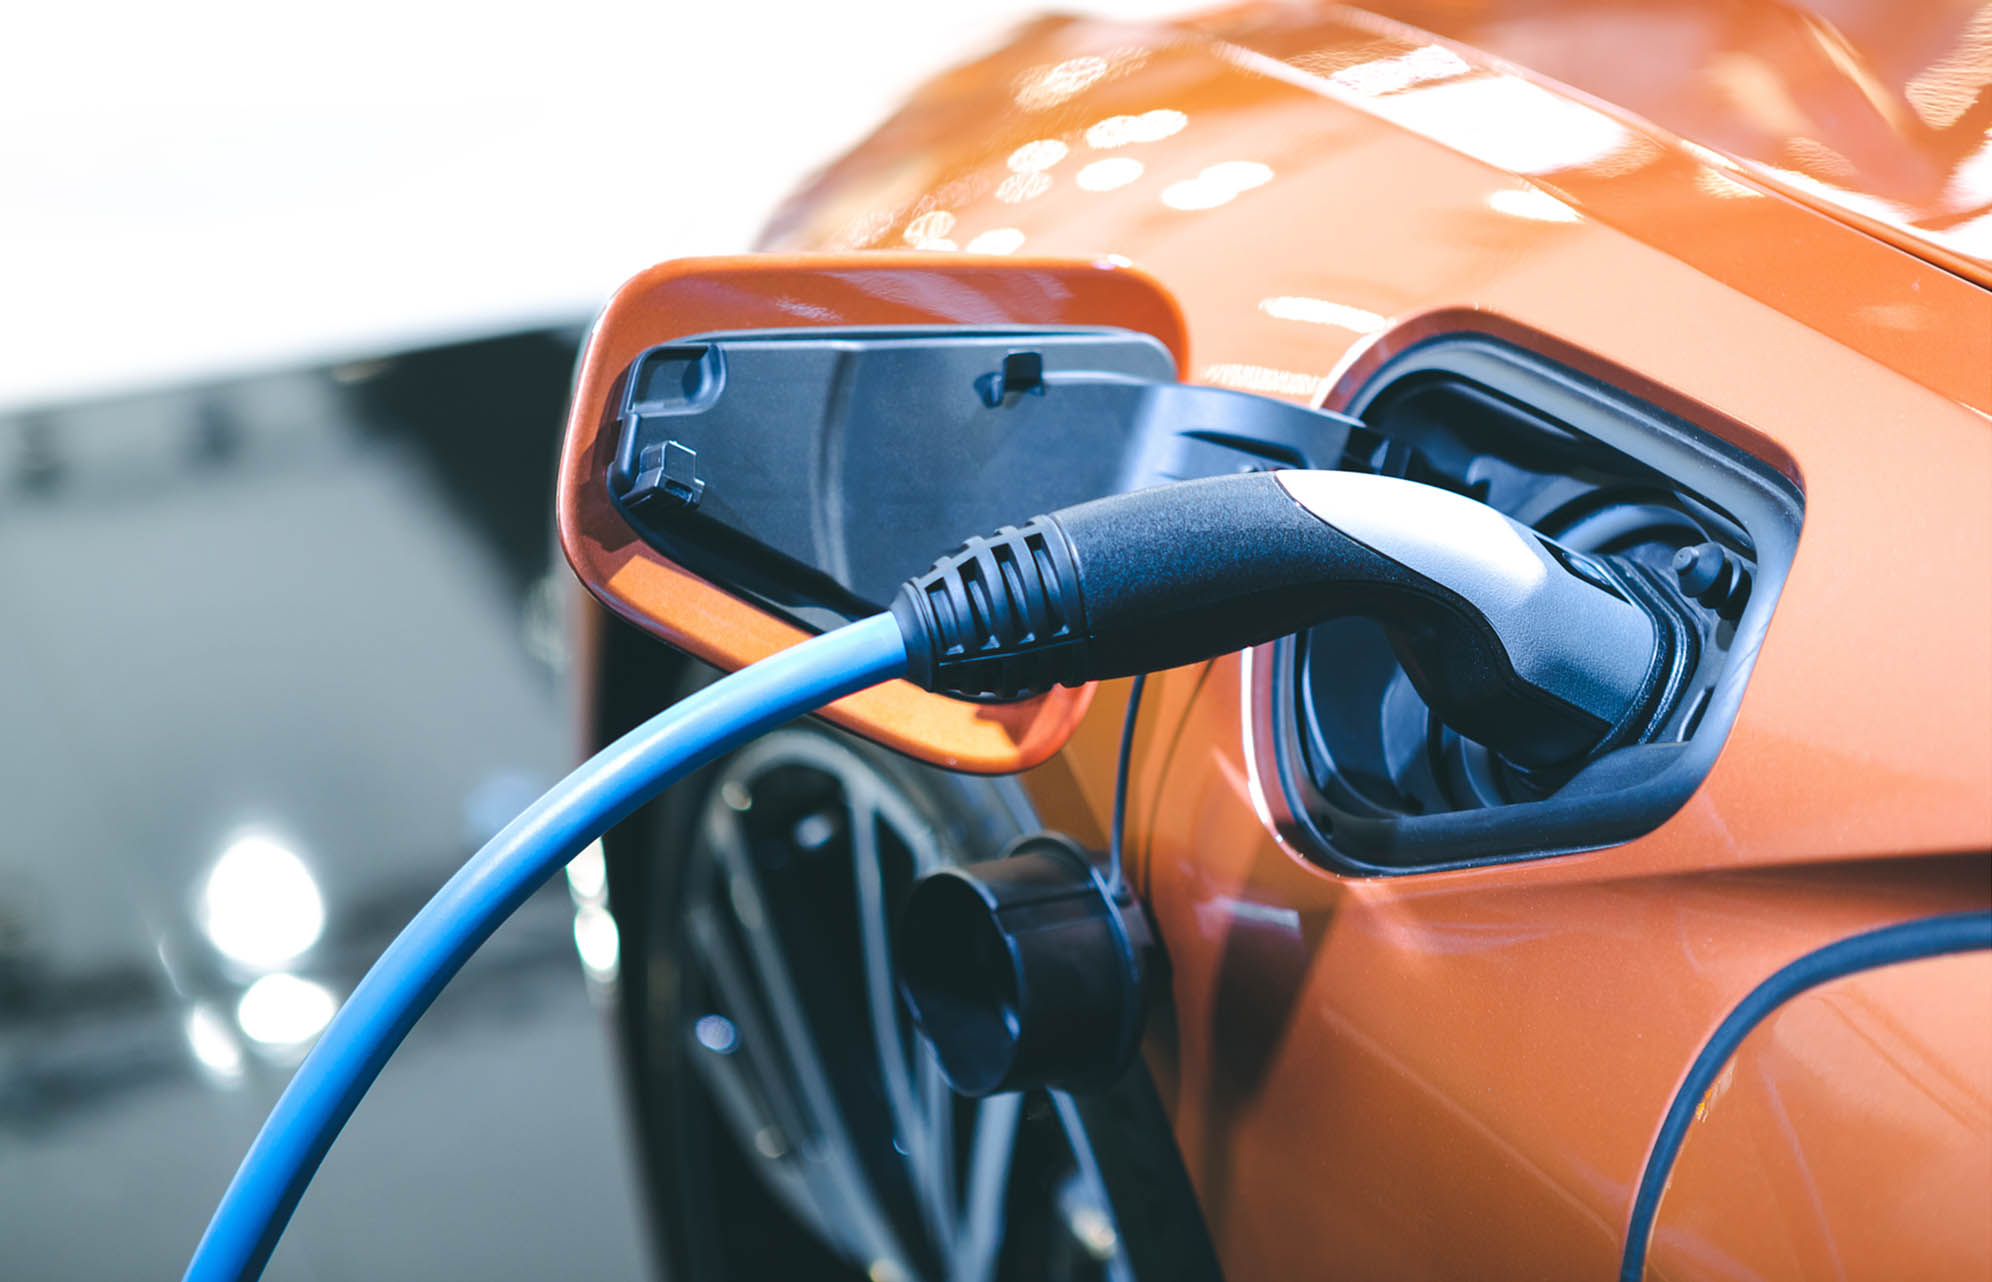 Each electrical or hybrid driven vehicle needs not only large amounts of lithium-ion battery cells, which are assembled in a battery pack and integrated into electrically driven vehicles but also compressed air and gas equipment for the manufacturing processes. Optimize your battery production by choosing the correct equipment combination. Combine air and gas compressors with the right dryers, filters, and gas generators for the best quality results.